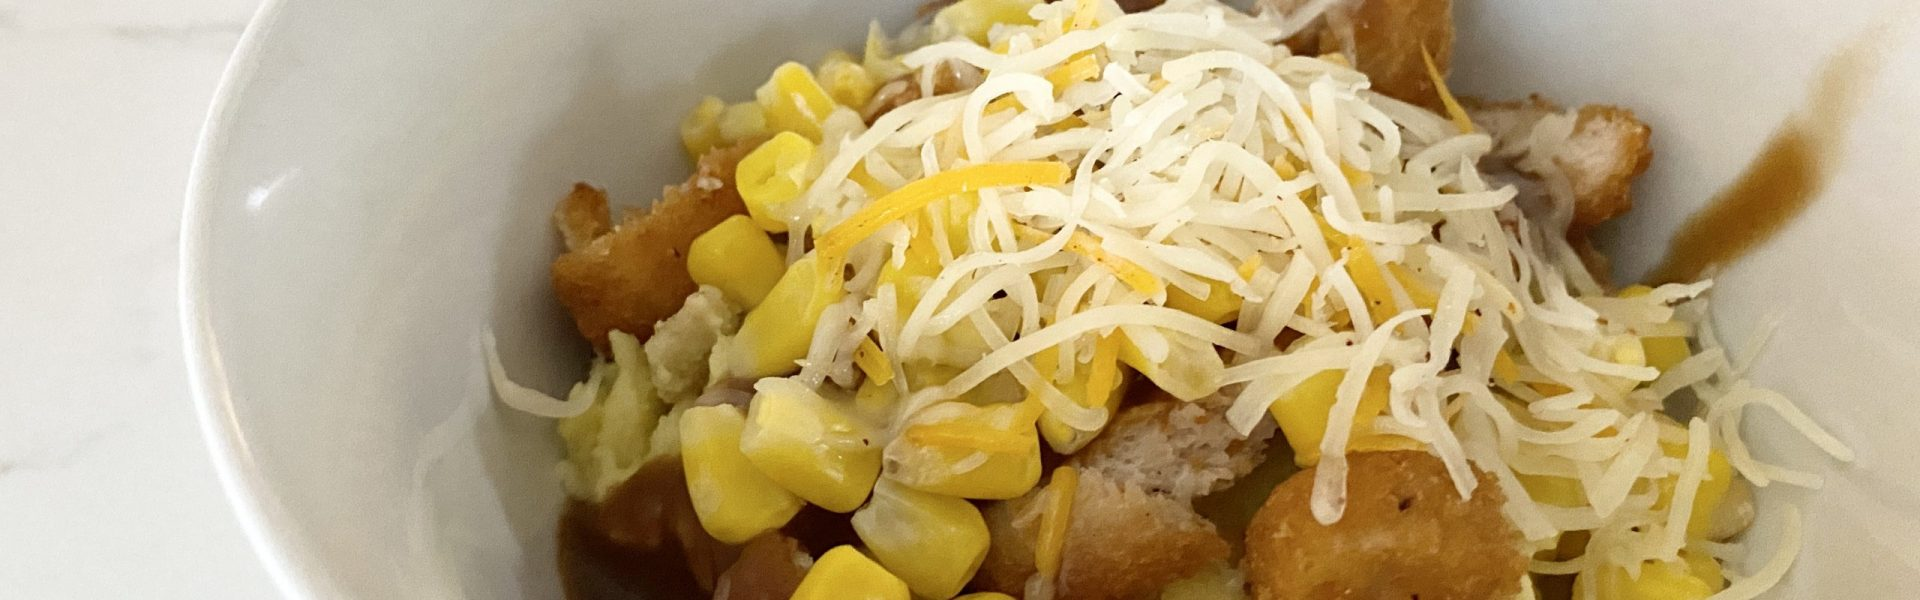 Quick & Easy Loaded Mashed Potato Bowls